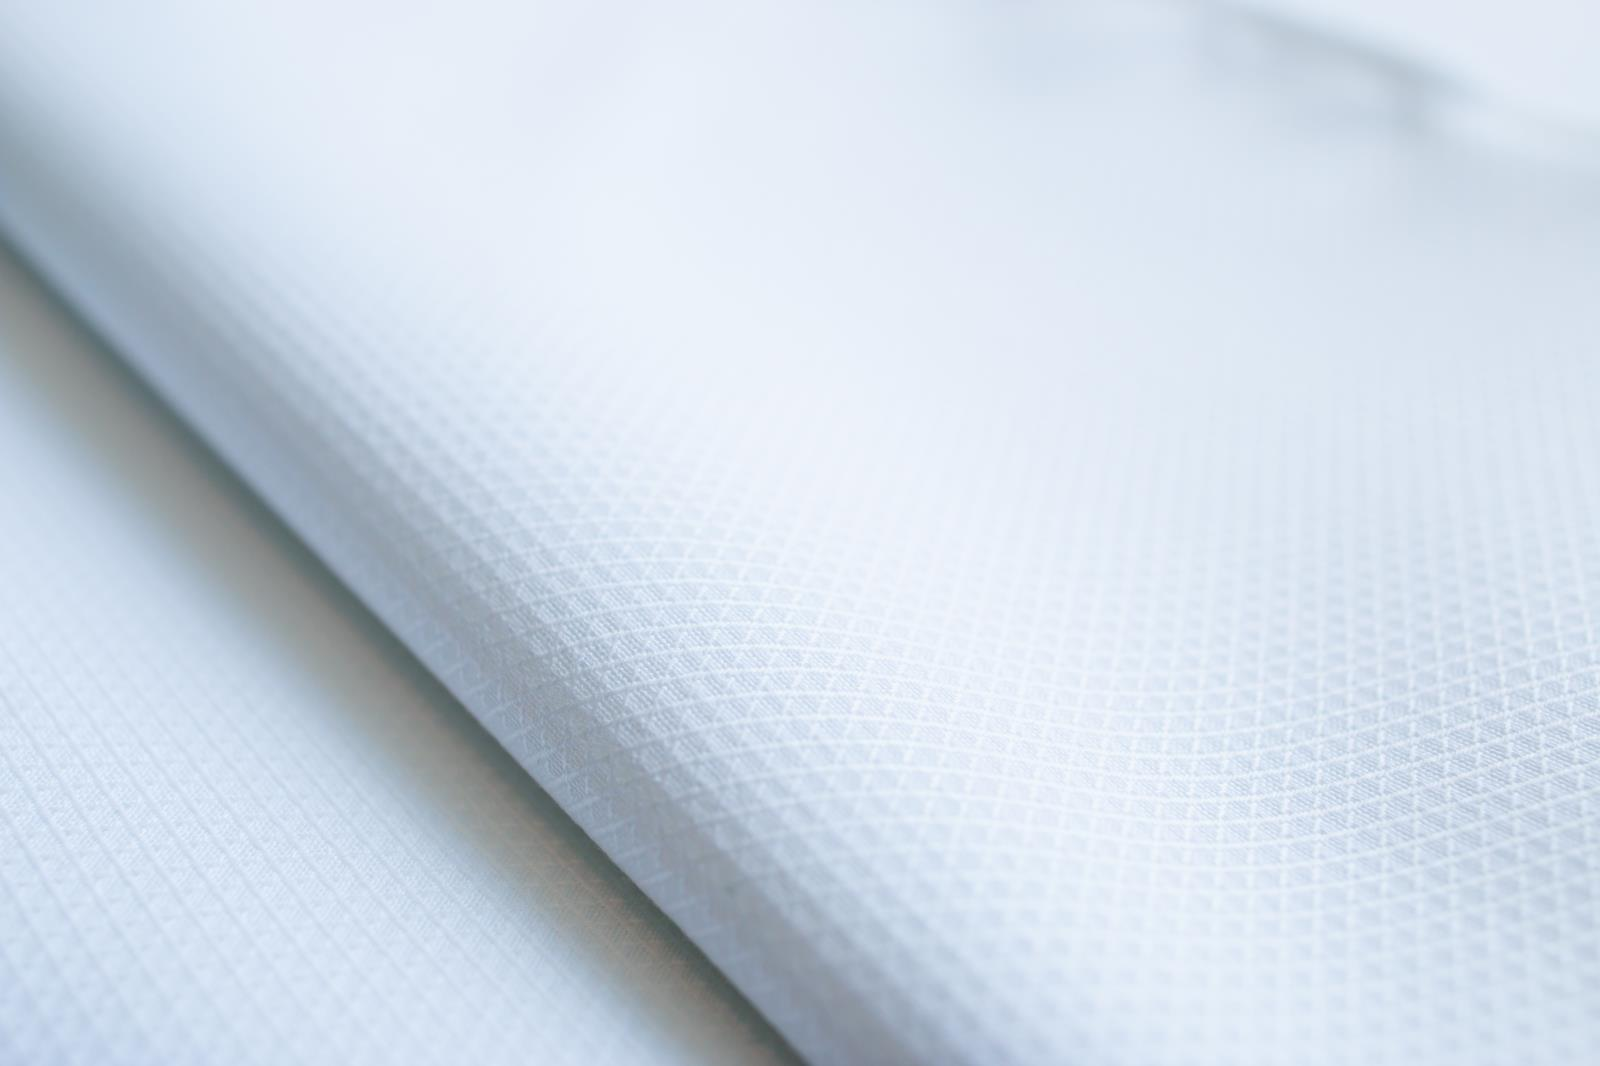 Milliken_Overall_Dolce_White_Cotton_Alternative_Napkin.jpg